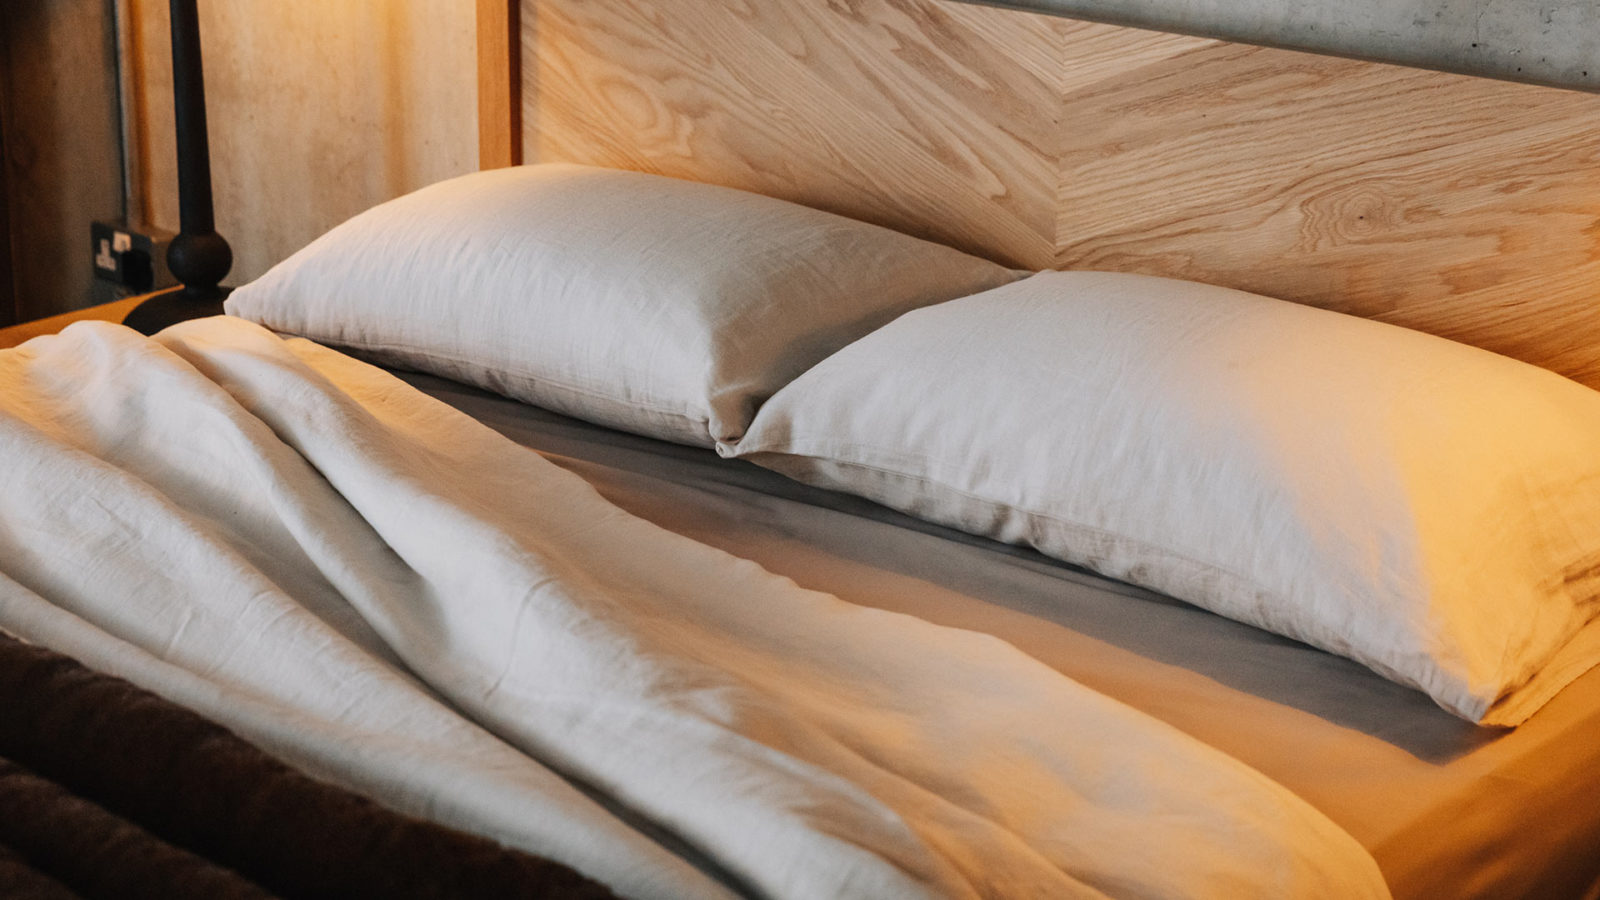 linen bedding on Kelham oak bed showing the hand crafted chevron pattern to the headboard